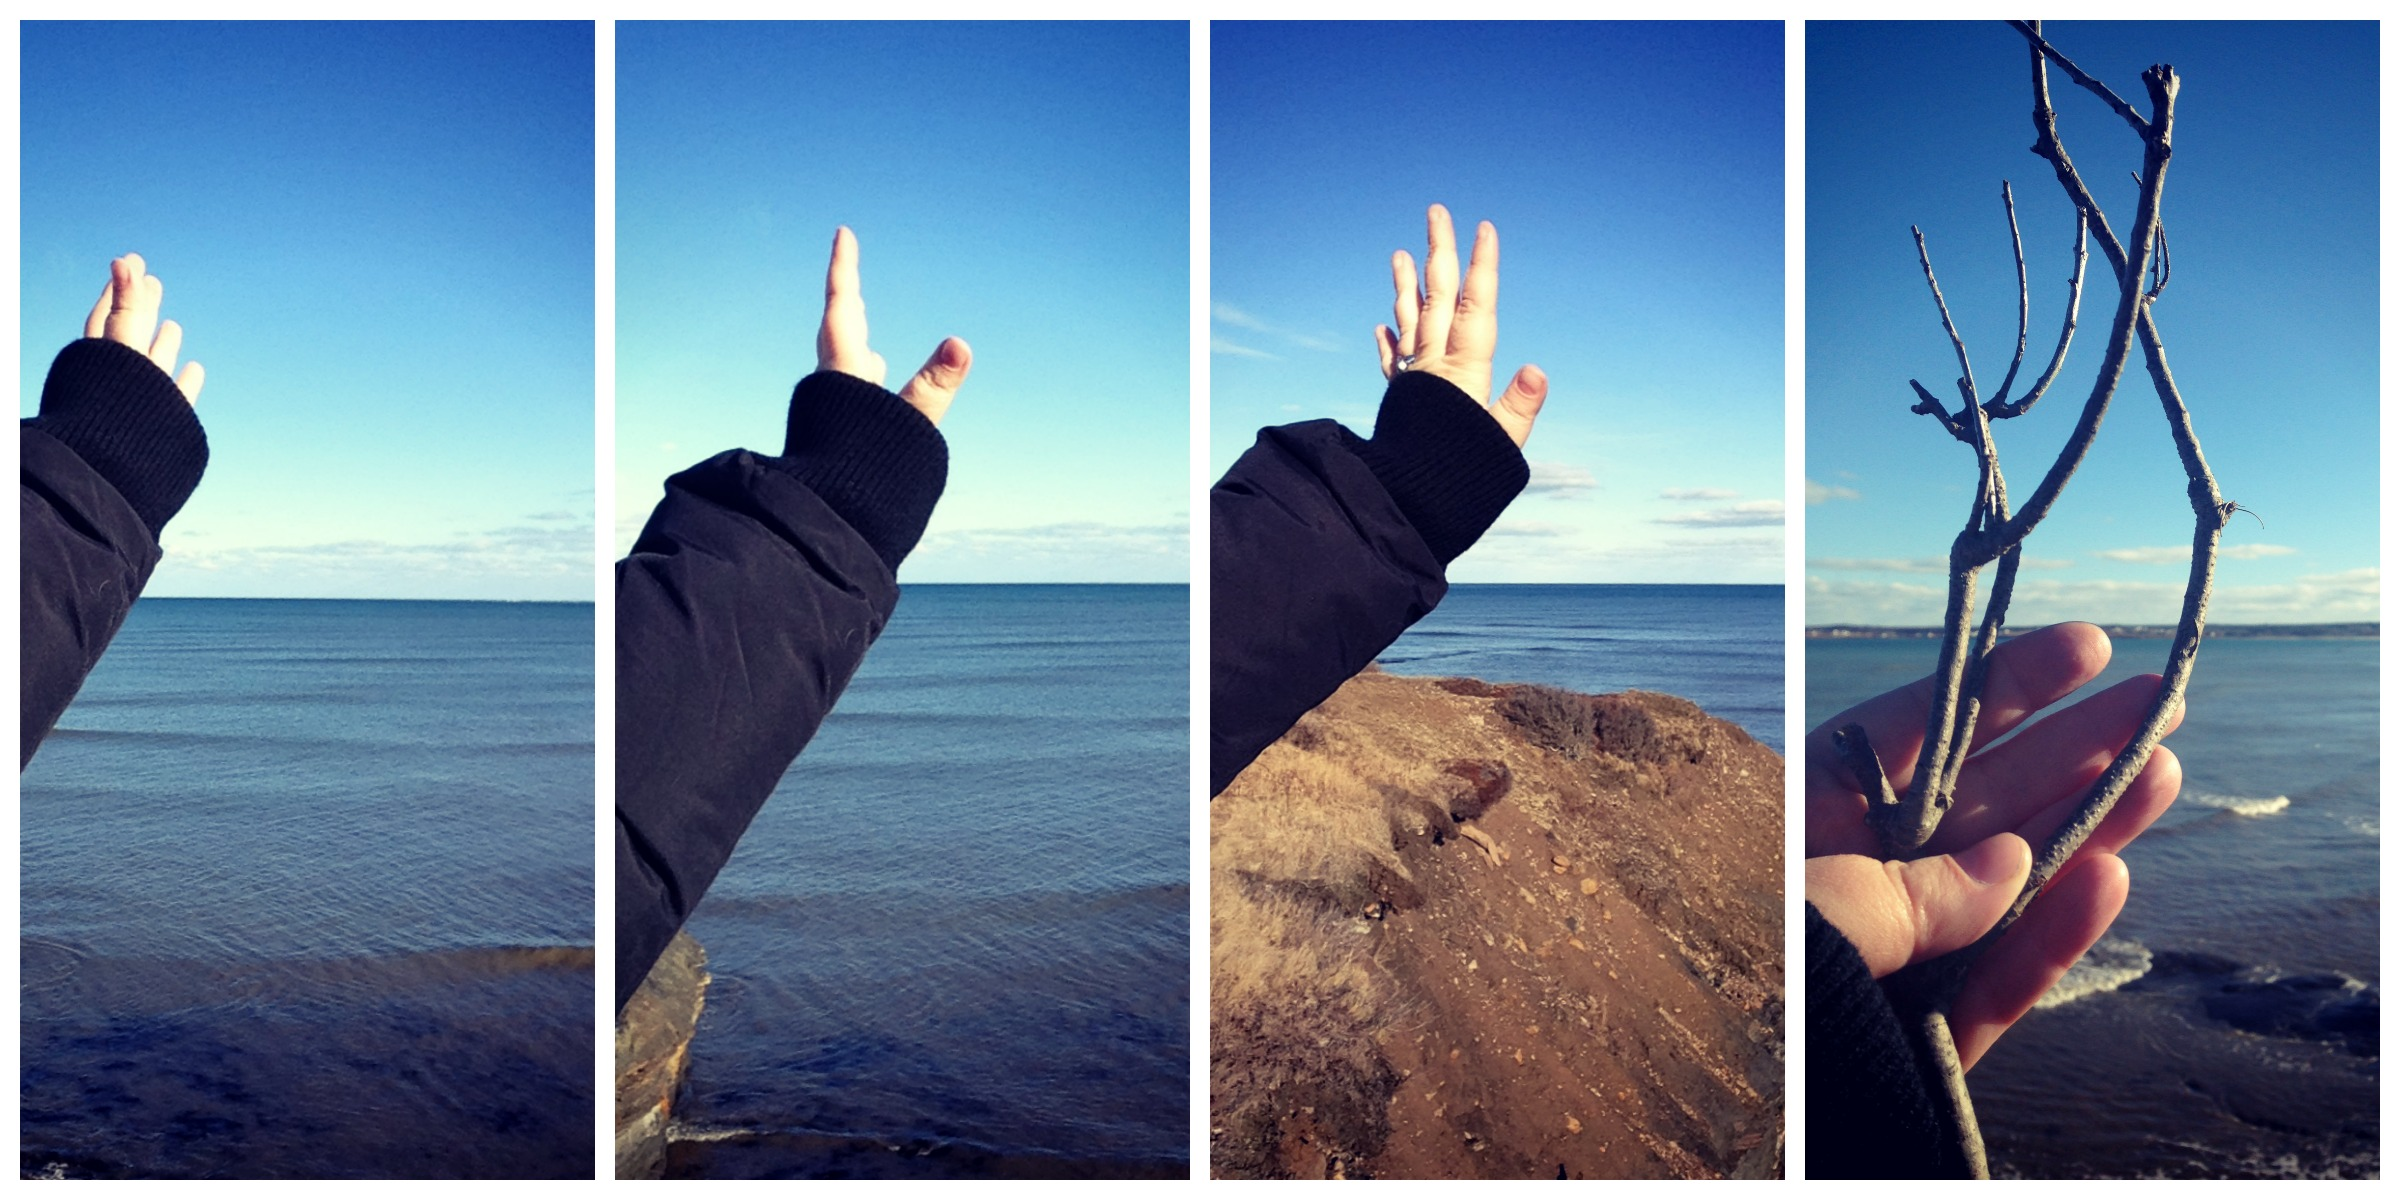 Hands and Ocean Collage